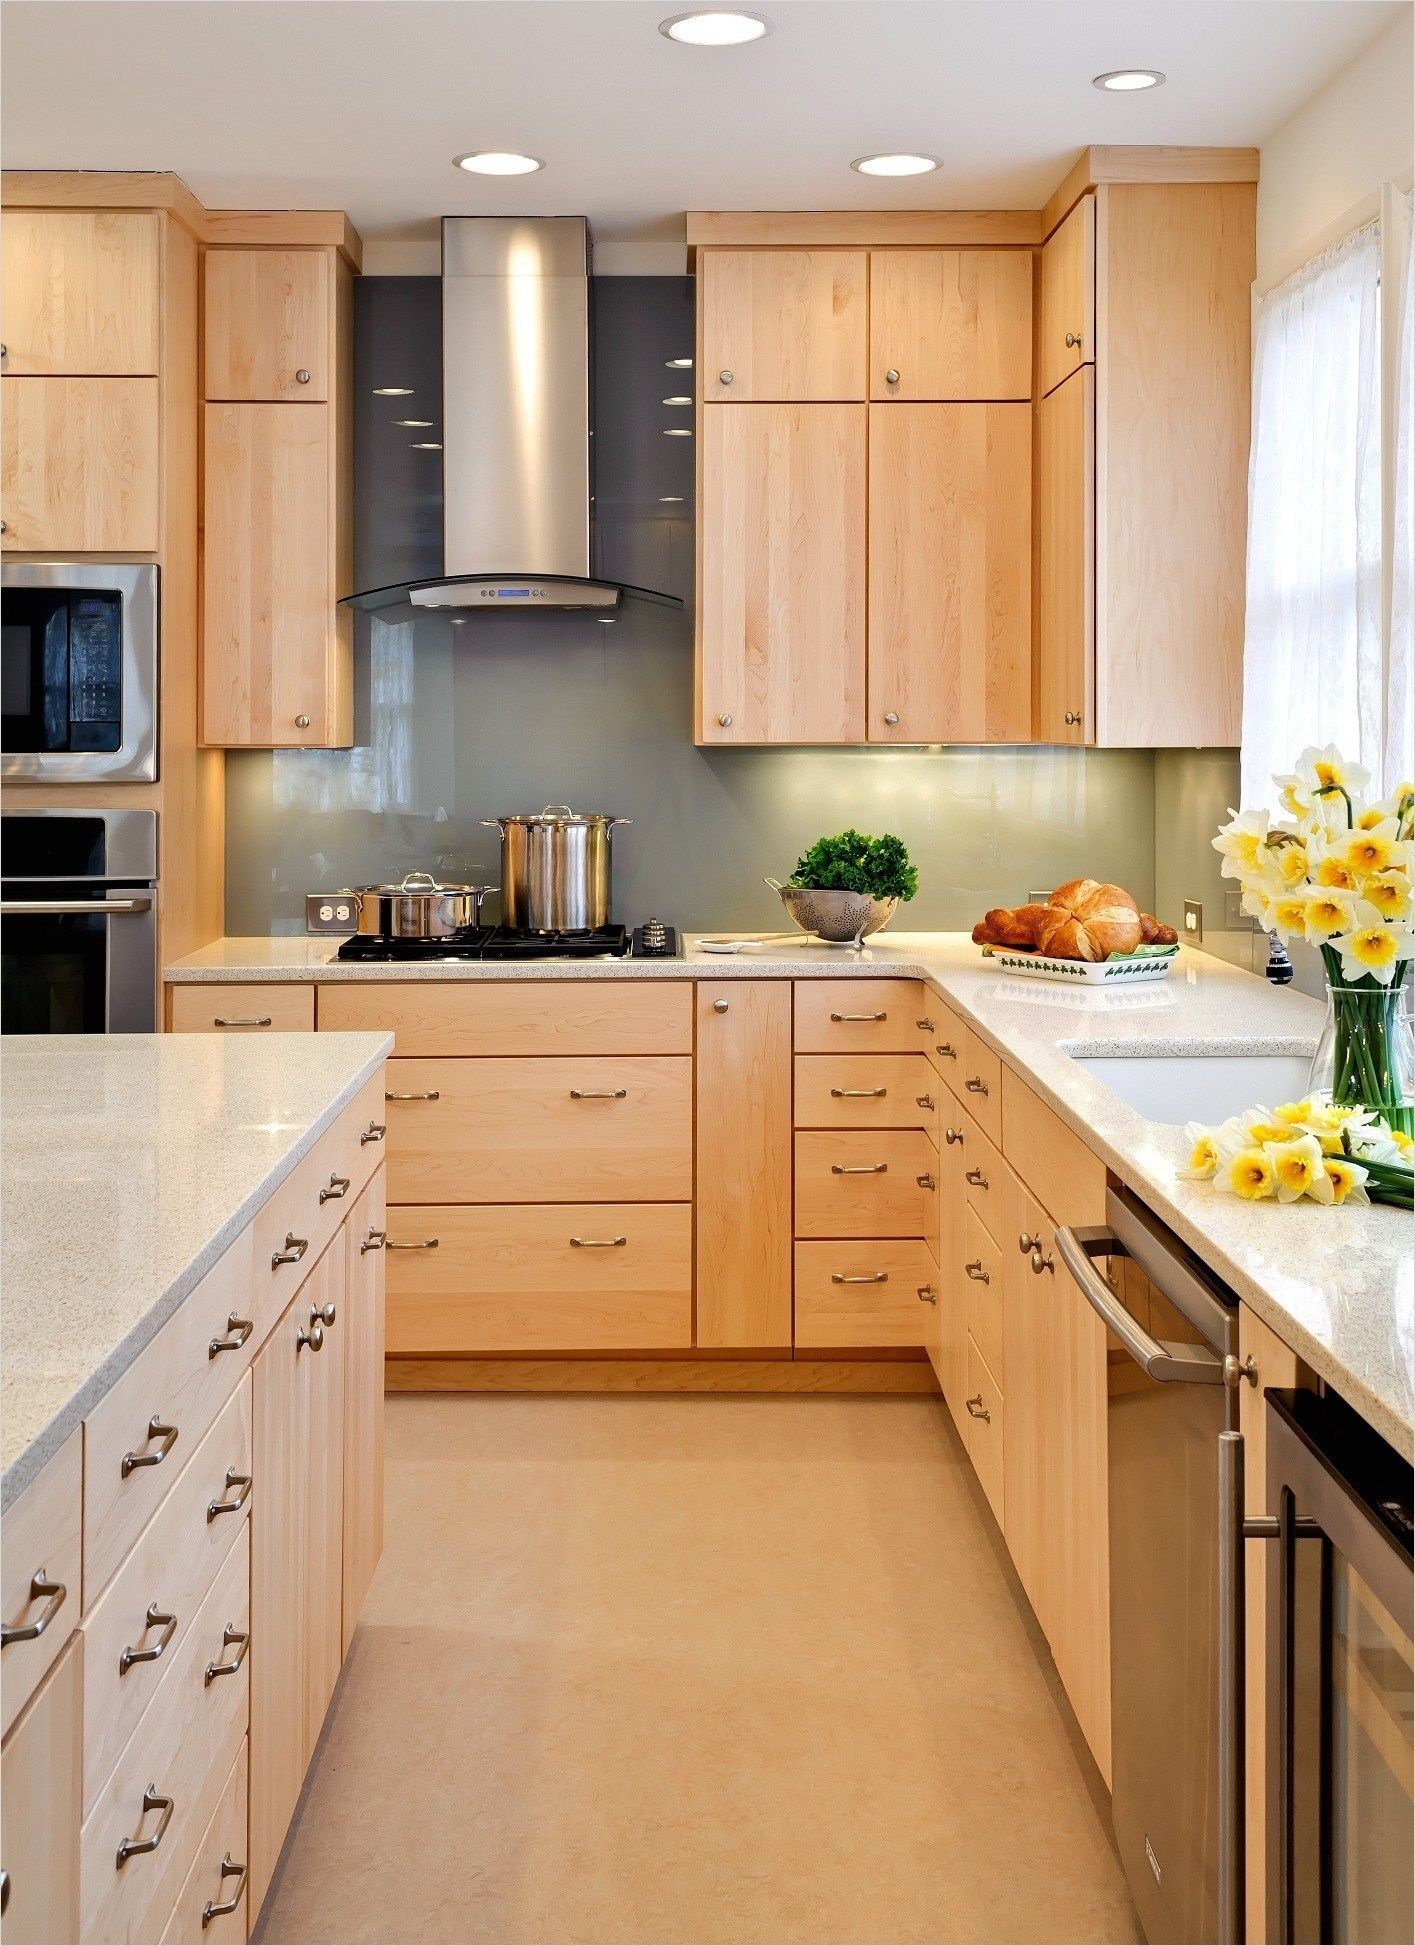 Kitchen With Maple Cabinets Color Ideas 4 Birch Kitchen Cabinets Maple Kitchen Cabinets Kitchen Cabinets And Countertops